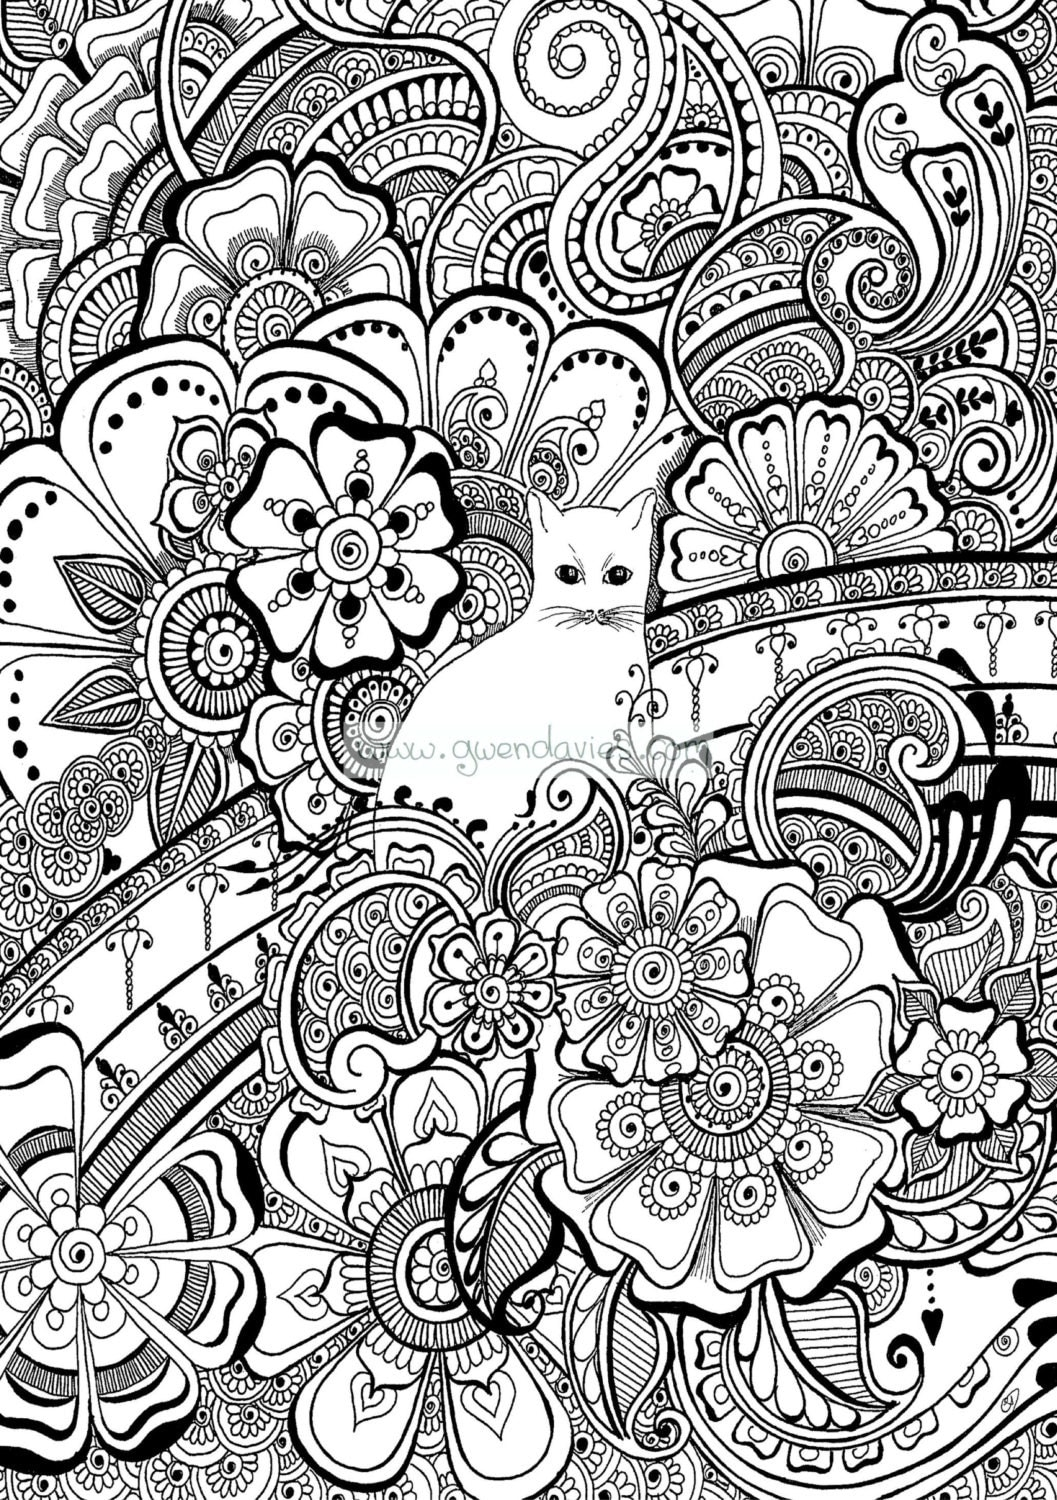 Colour the cat with henna flowers colouring in sheet for for Henna coloring pages